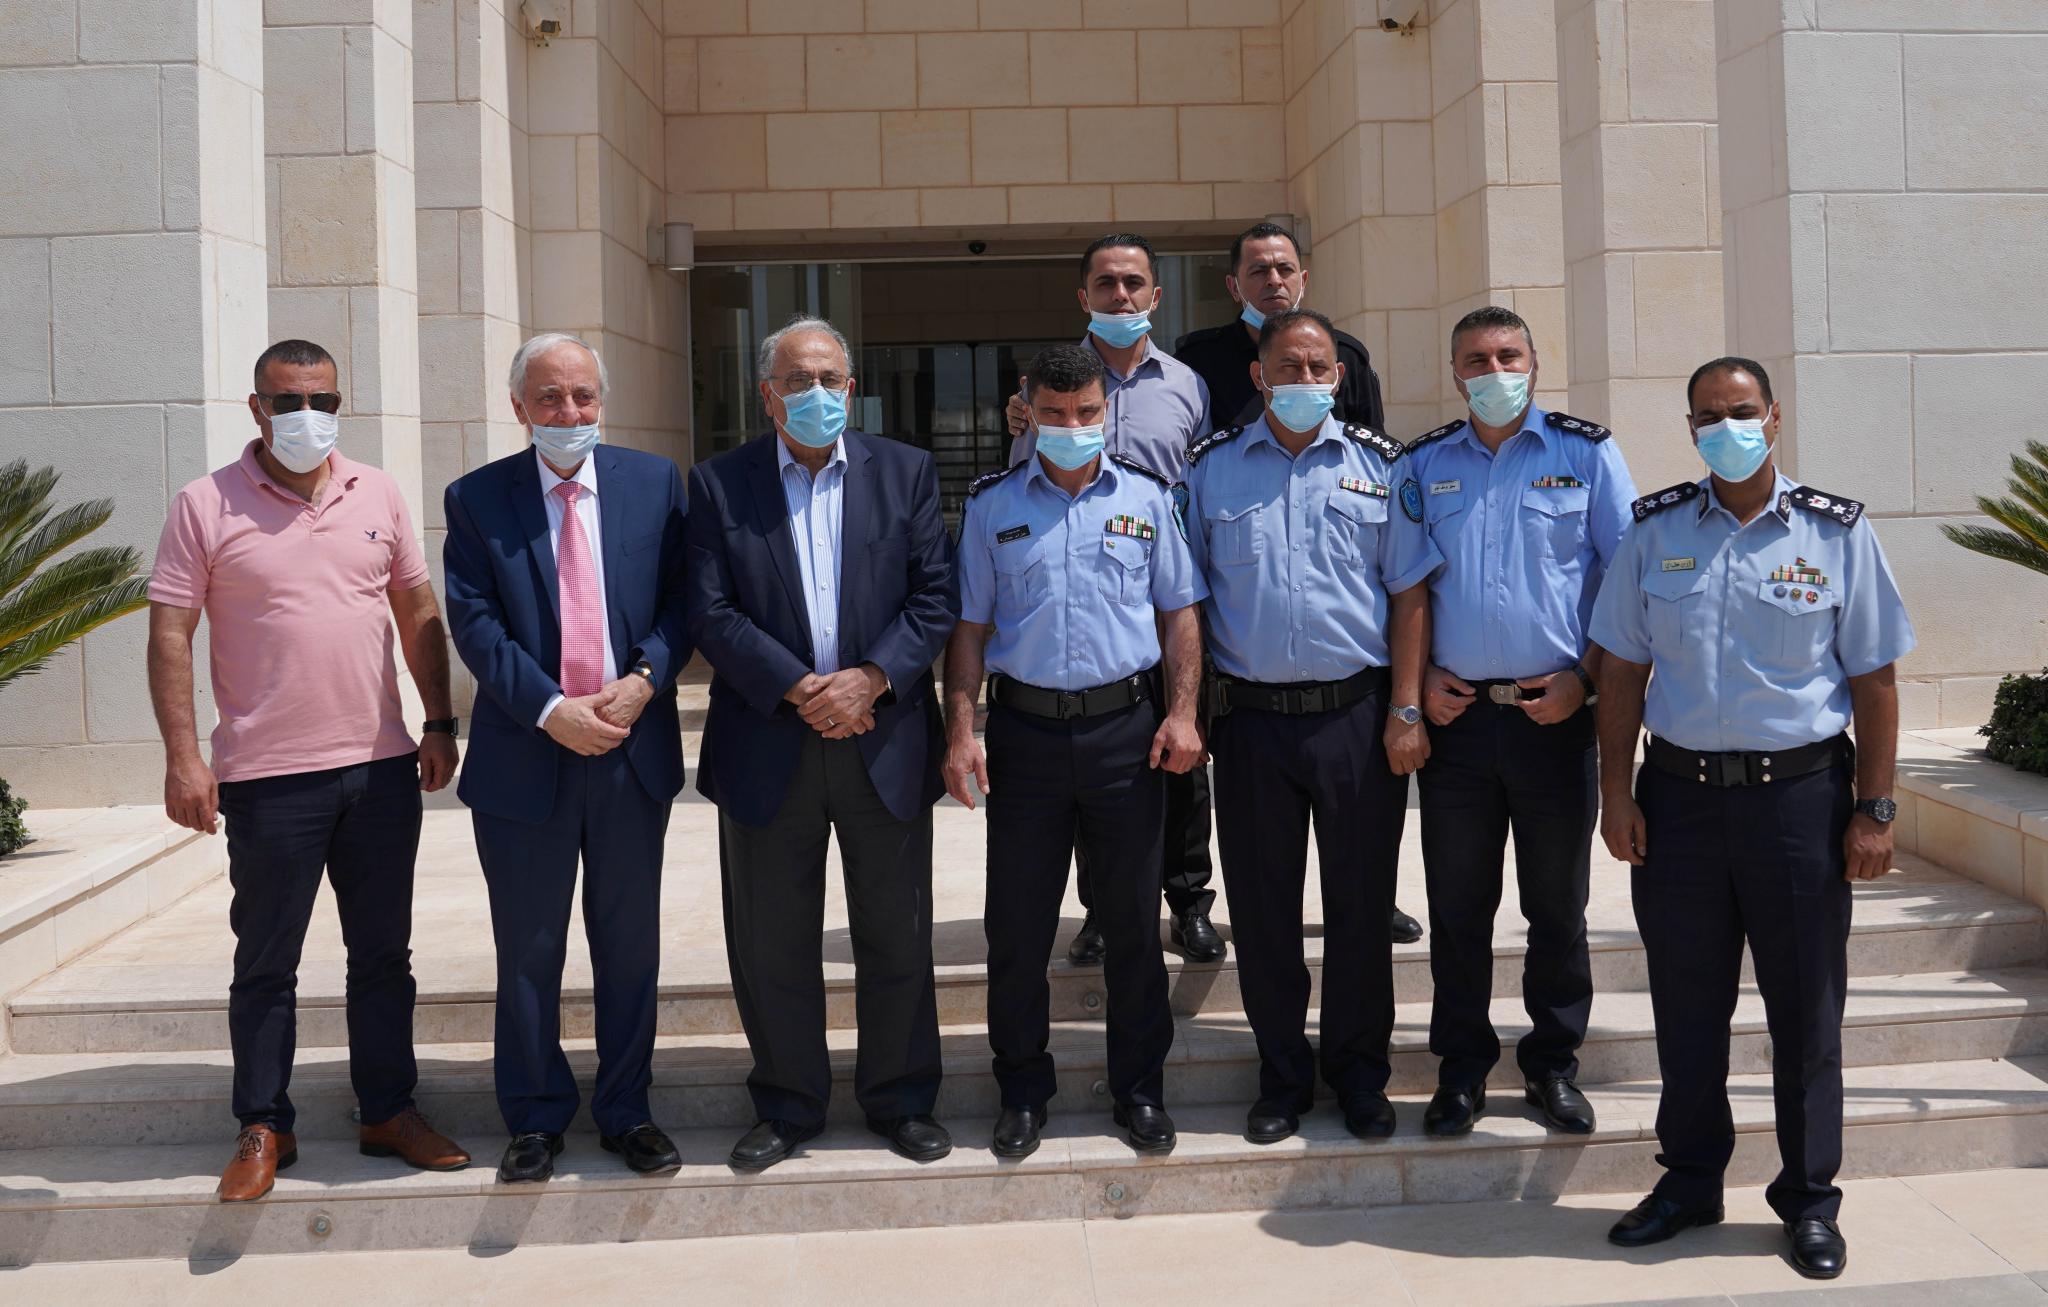 Prof. Ali Zeidan Abu Zuhri- the university President welcomed Brigadier Azzam Jbara- the Police Chief of Jenin and the accompanied delegation in his office.